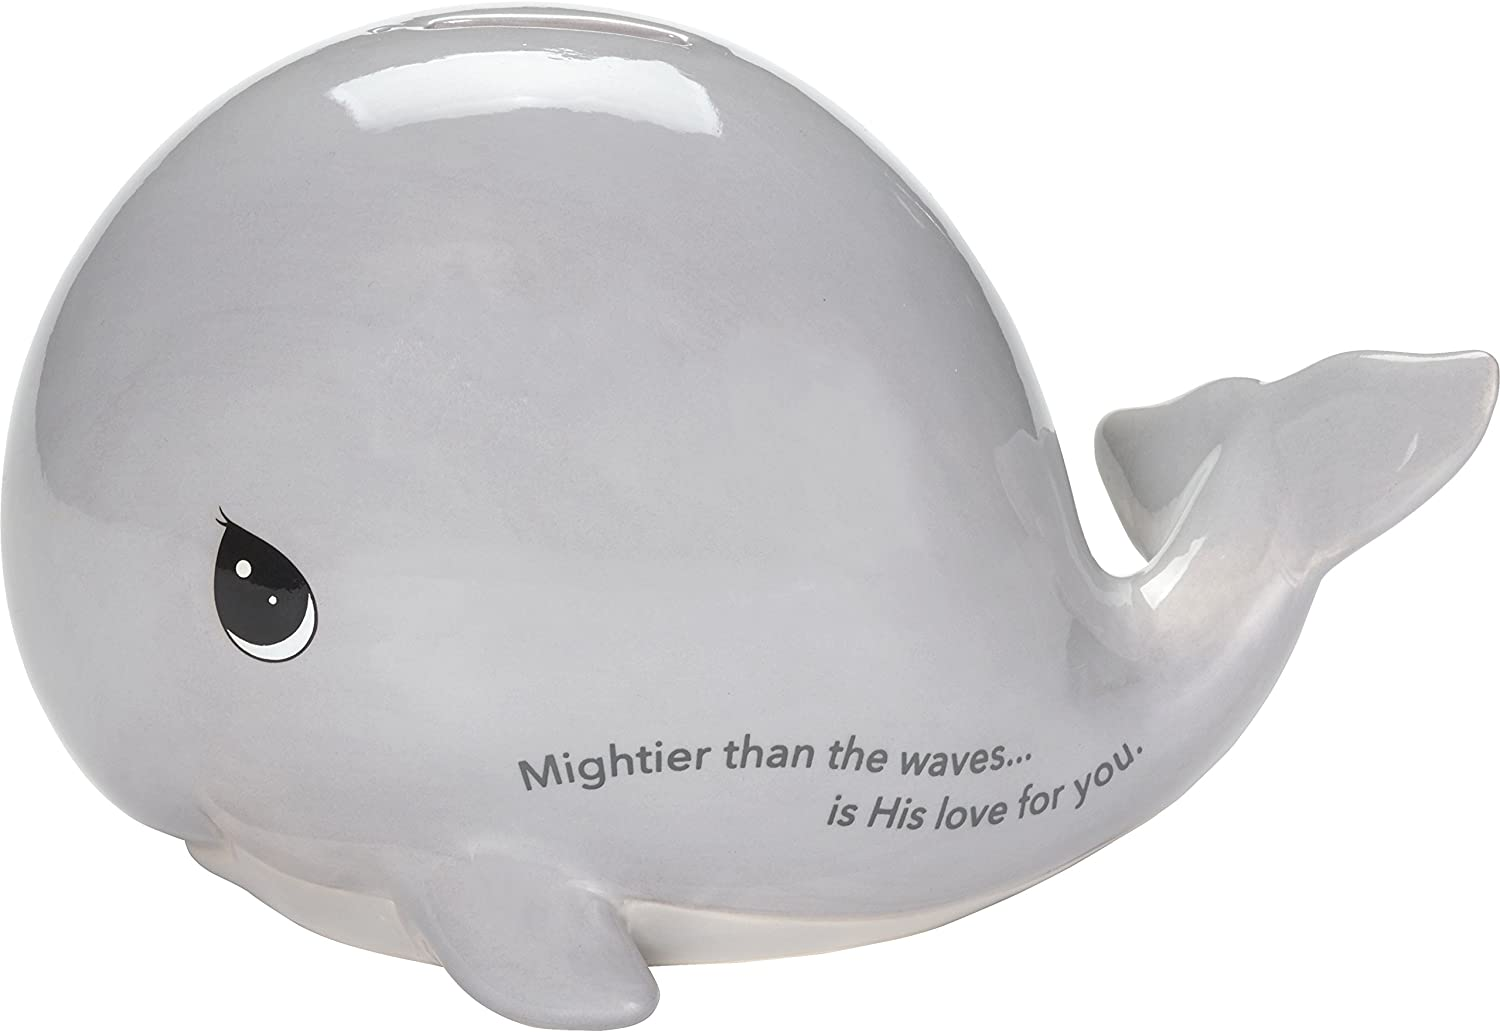 Precious Moments Mightier Than The Waves Ceramic Whale Bank, One Size, Multi